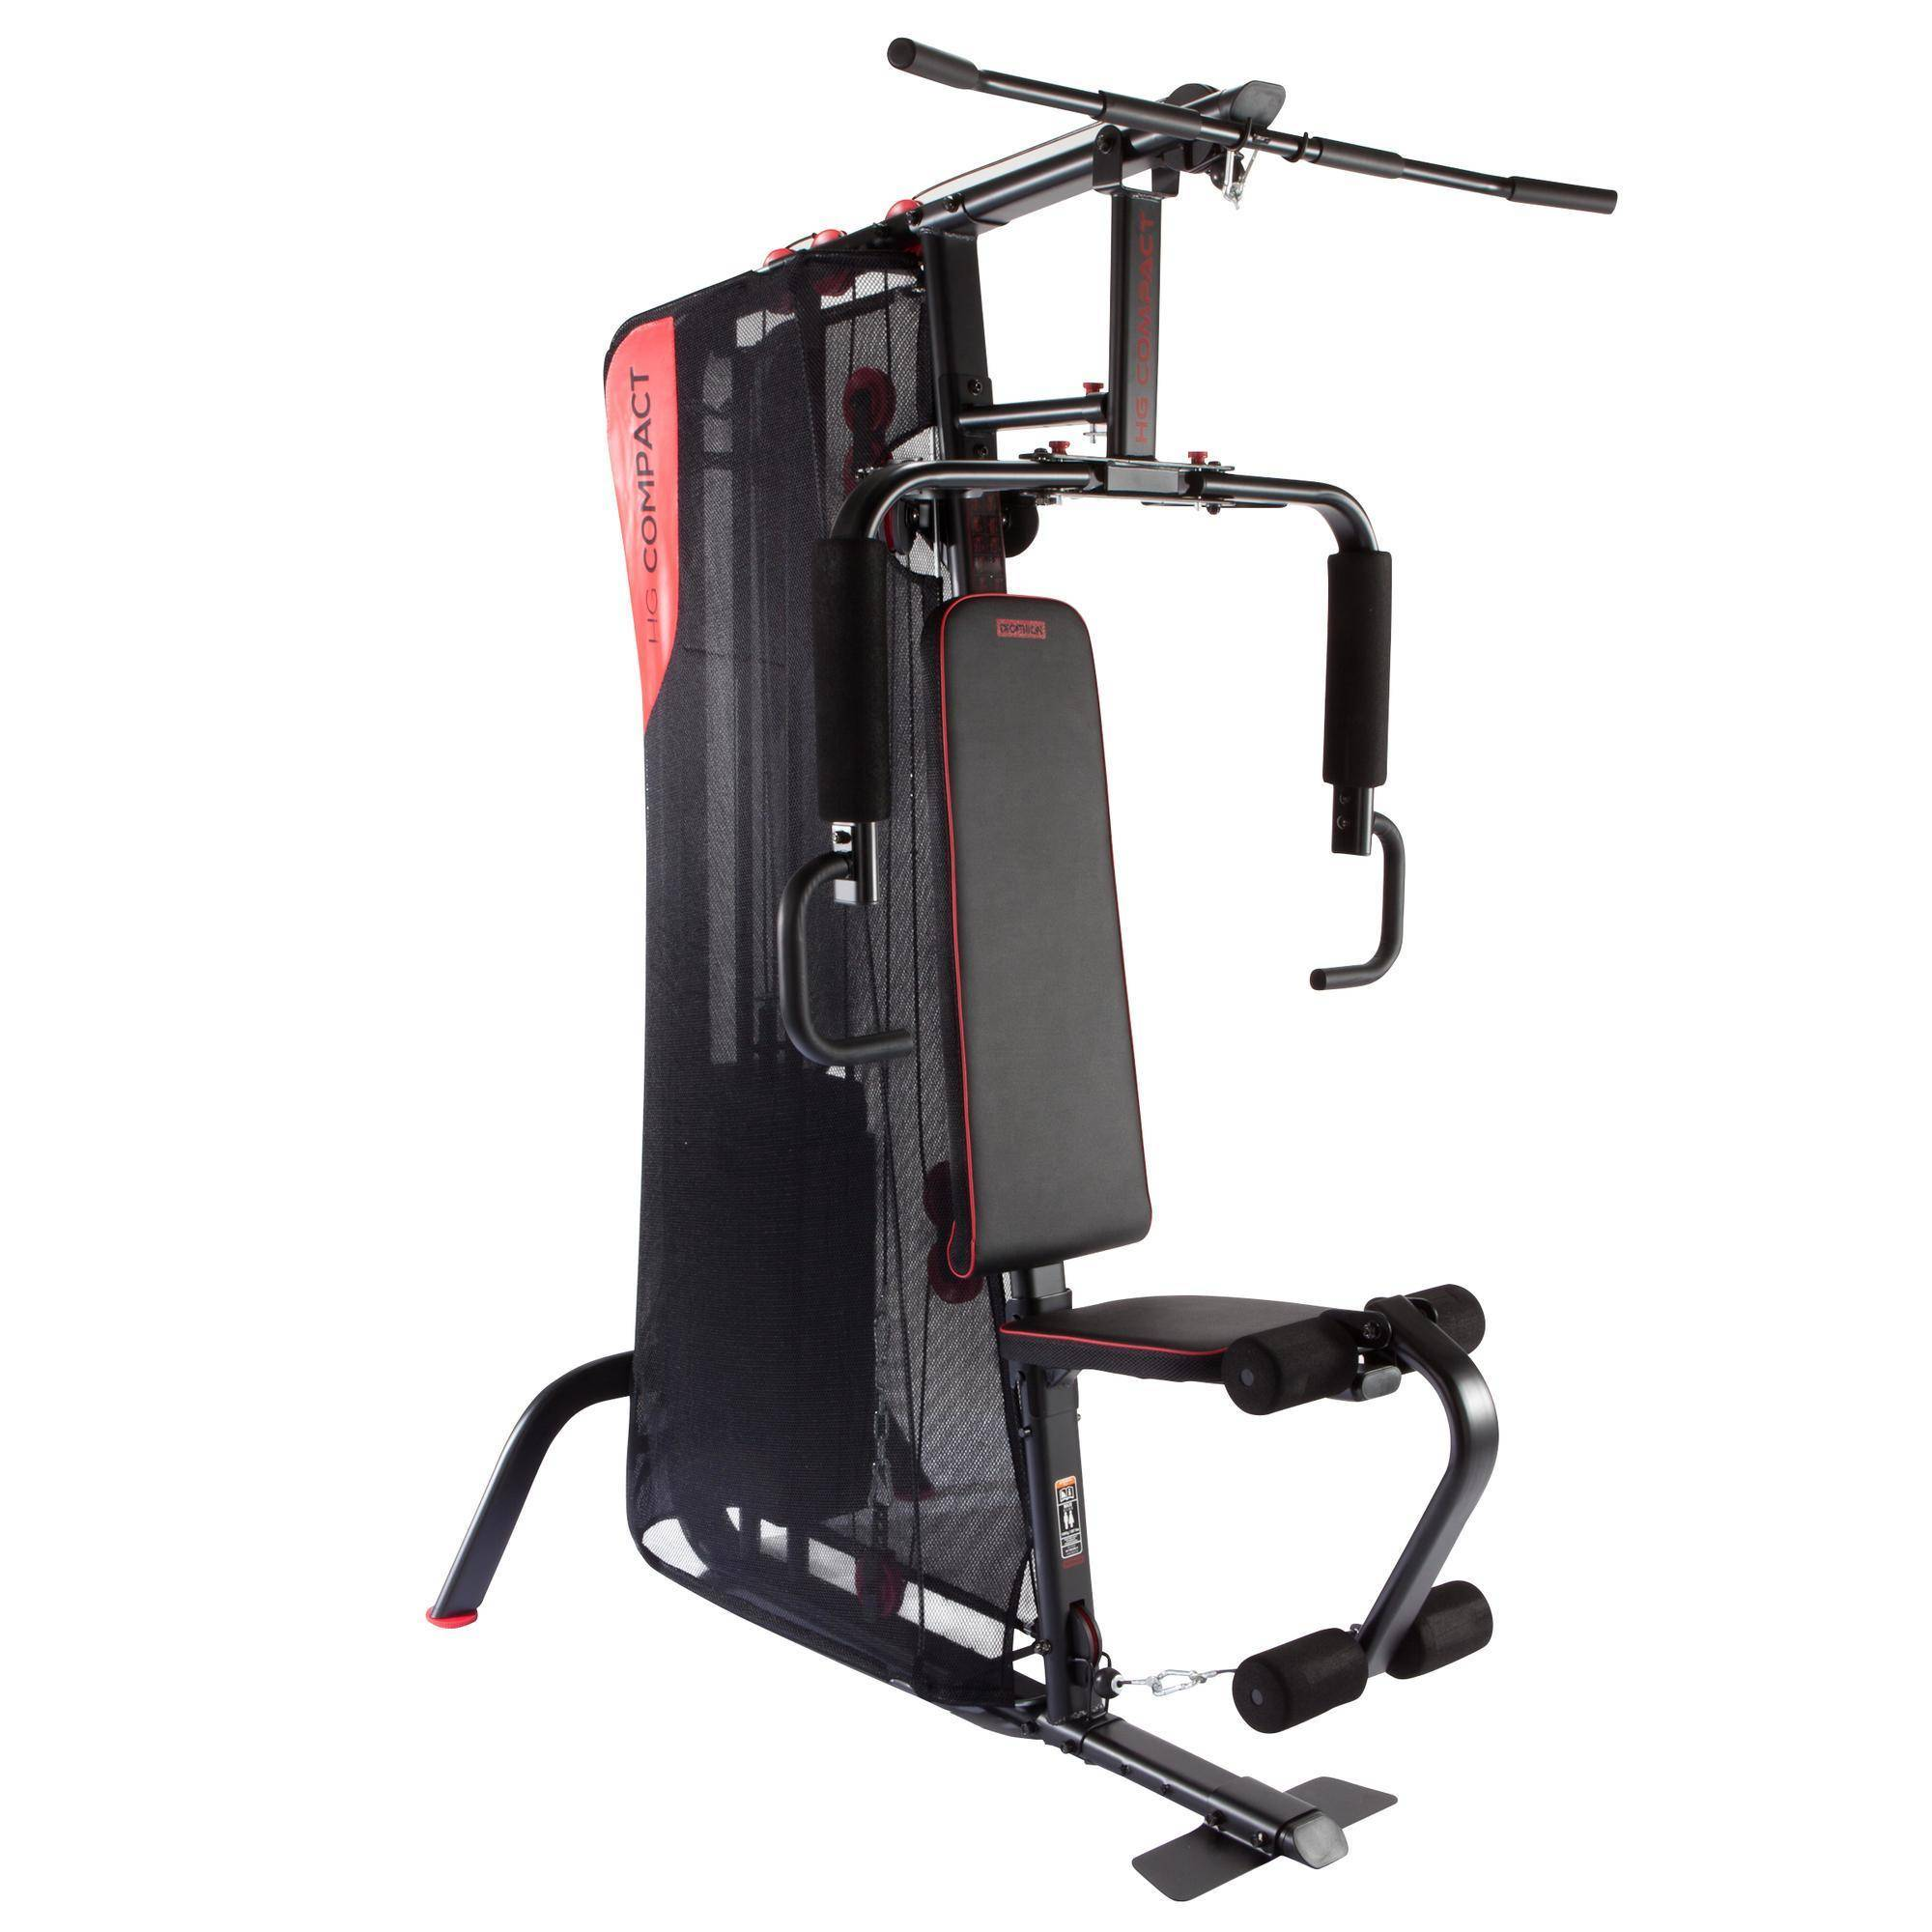 DOMYOS Appareil à Charge Guidée Home Gym Compact Musculation - DOMYOS - SANS TAILLE